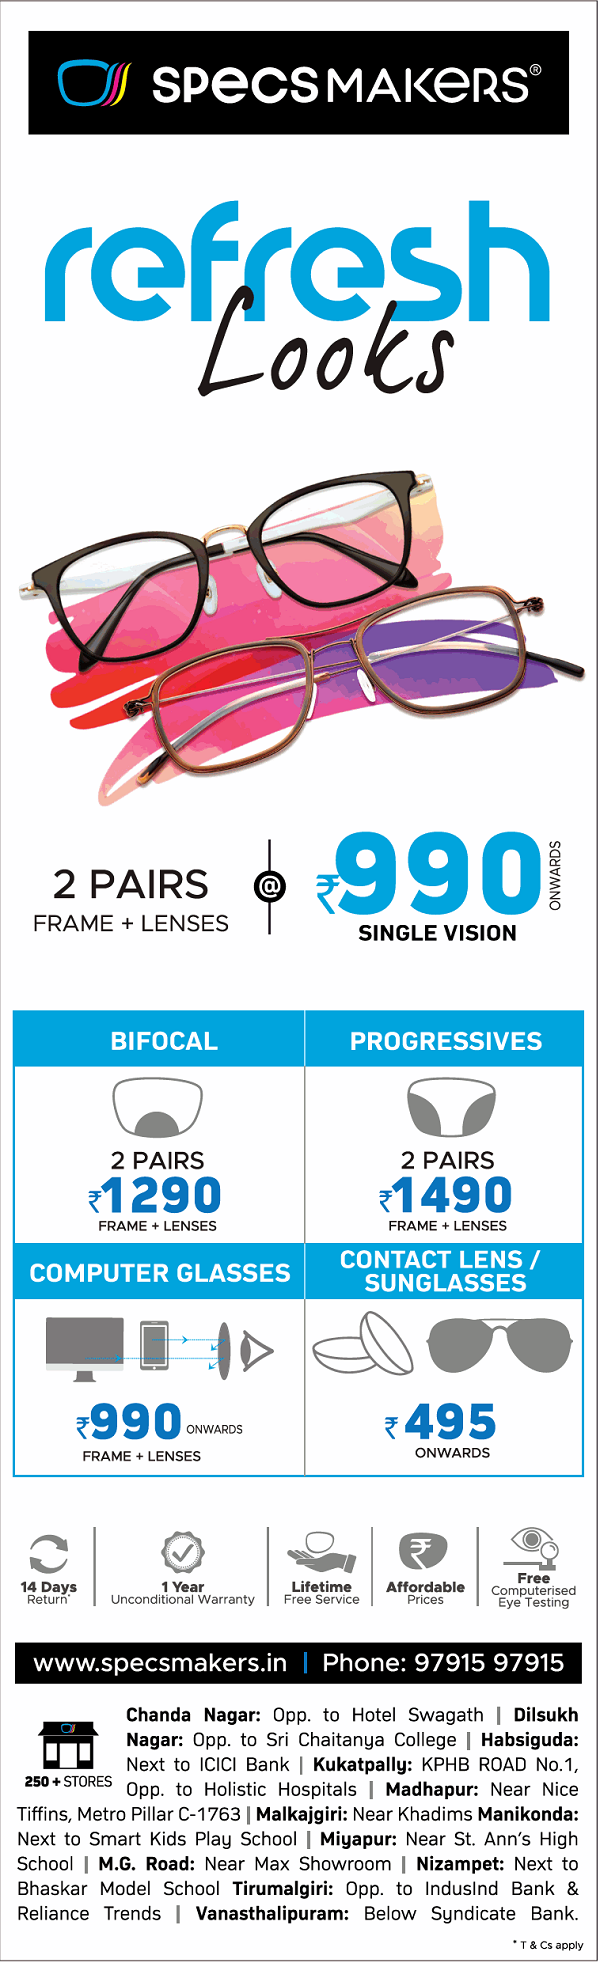 Specsmakers offers India